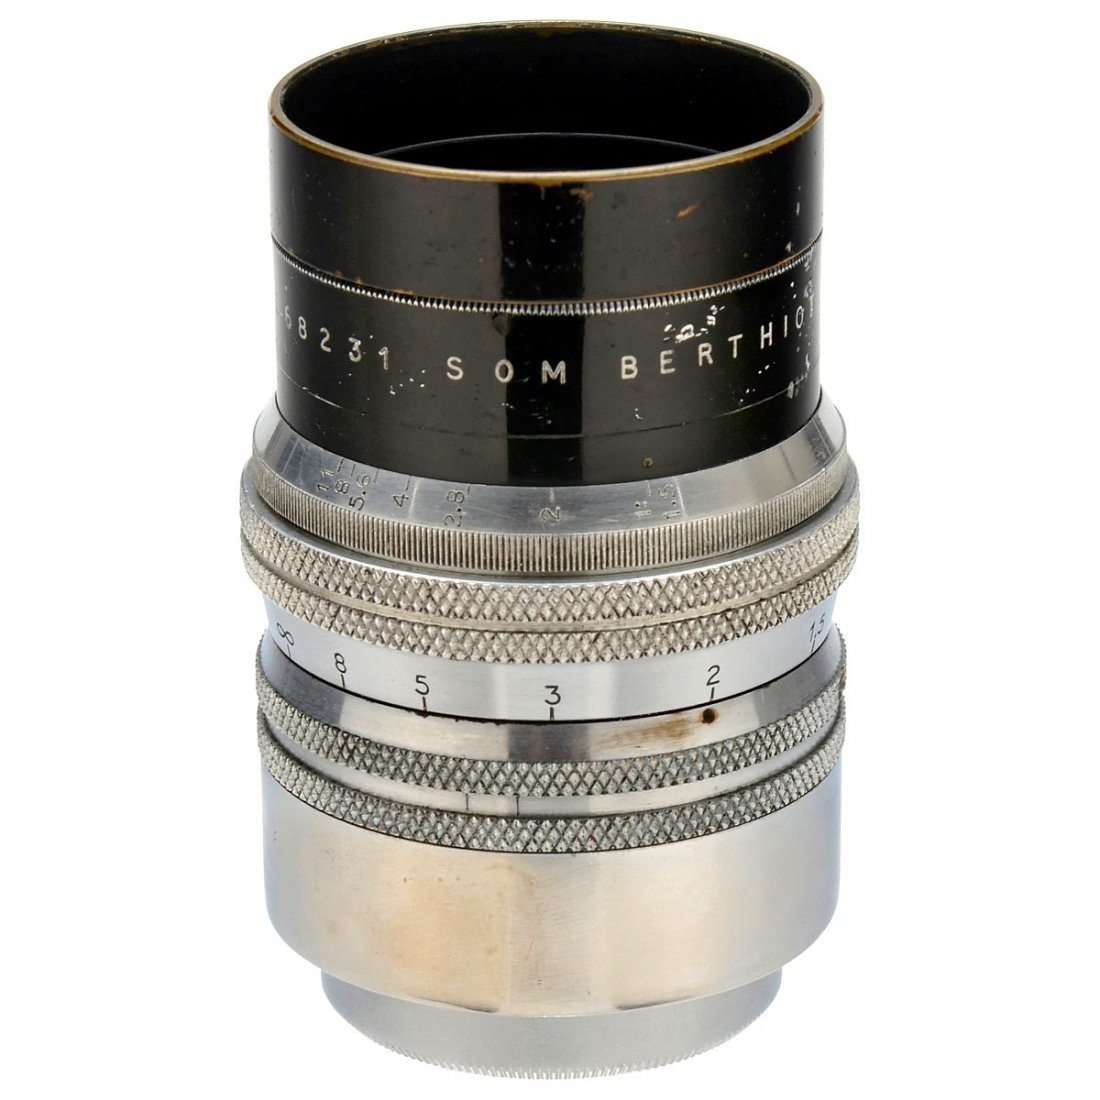 SOM Berthiot Lens 1,5/55 mm for Screw-Mount Leica